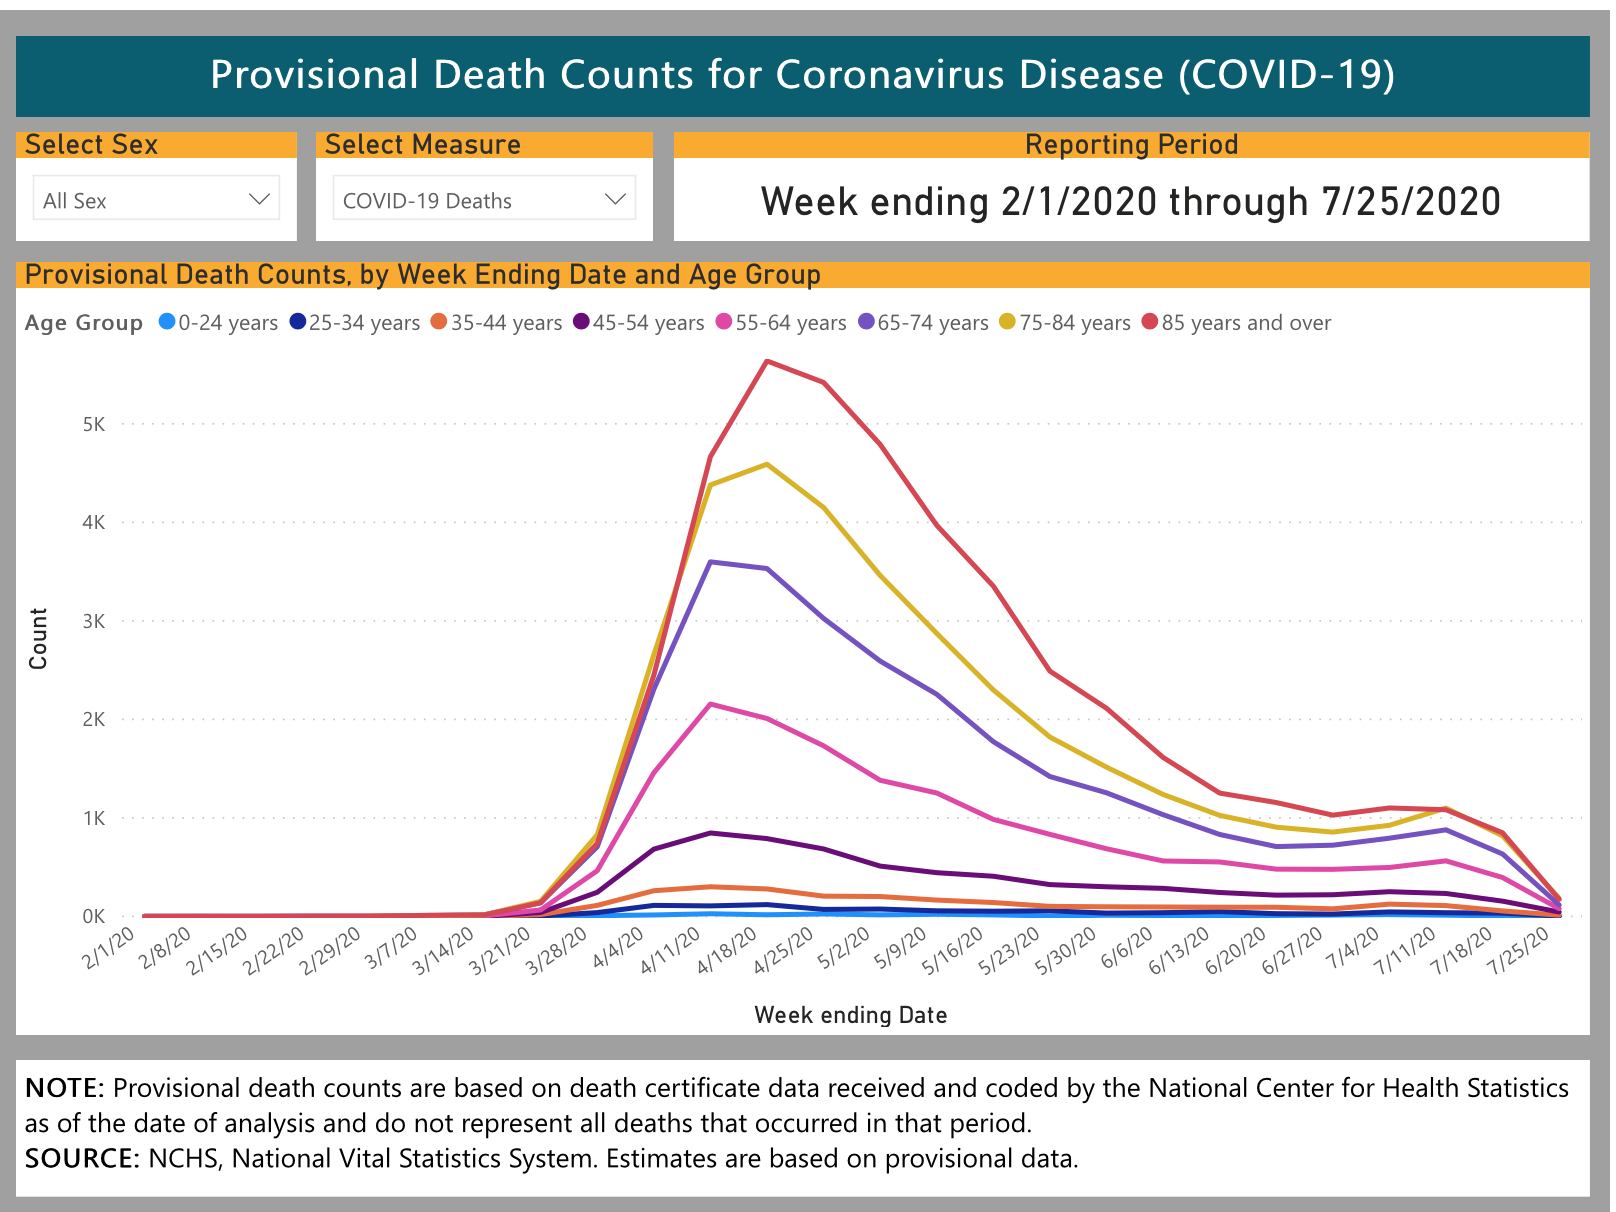 Prov Death Counts